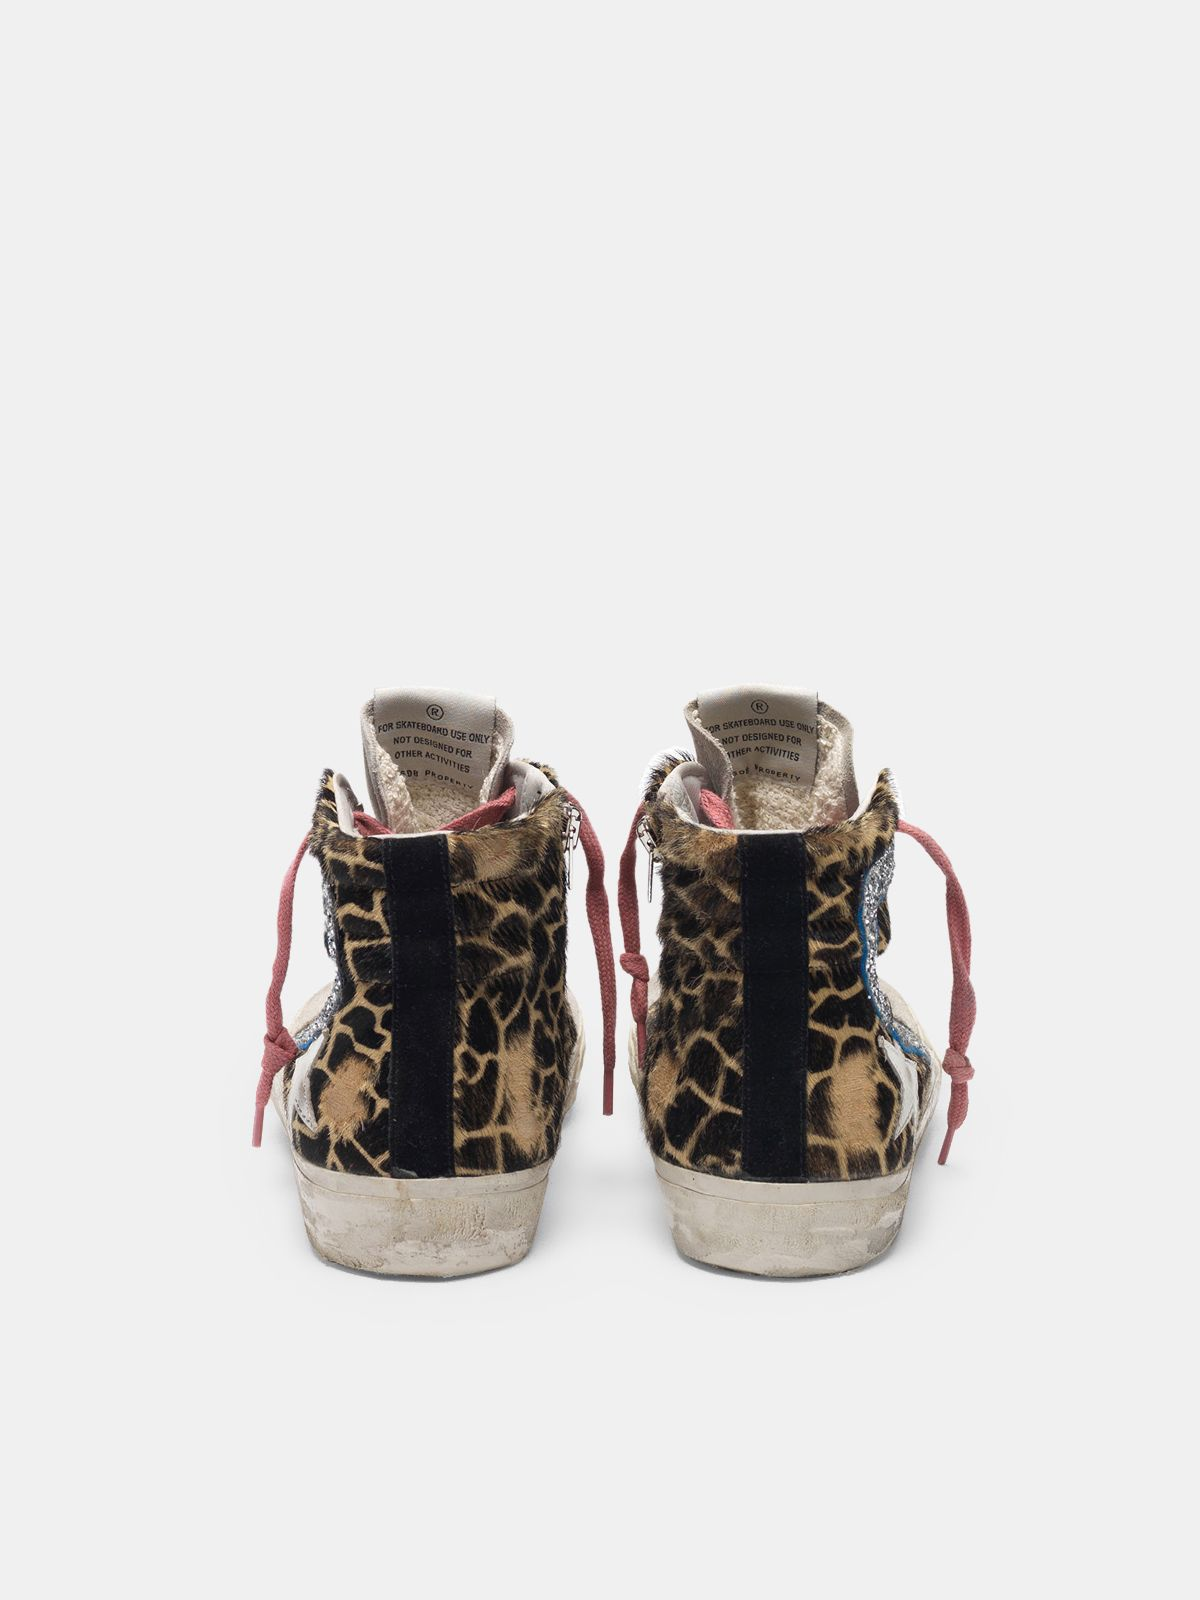 Golden Goose - Sneakers Slide in cavallino stampa animalier in